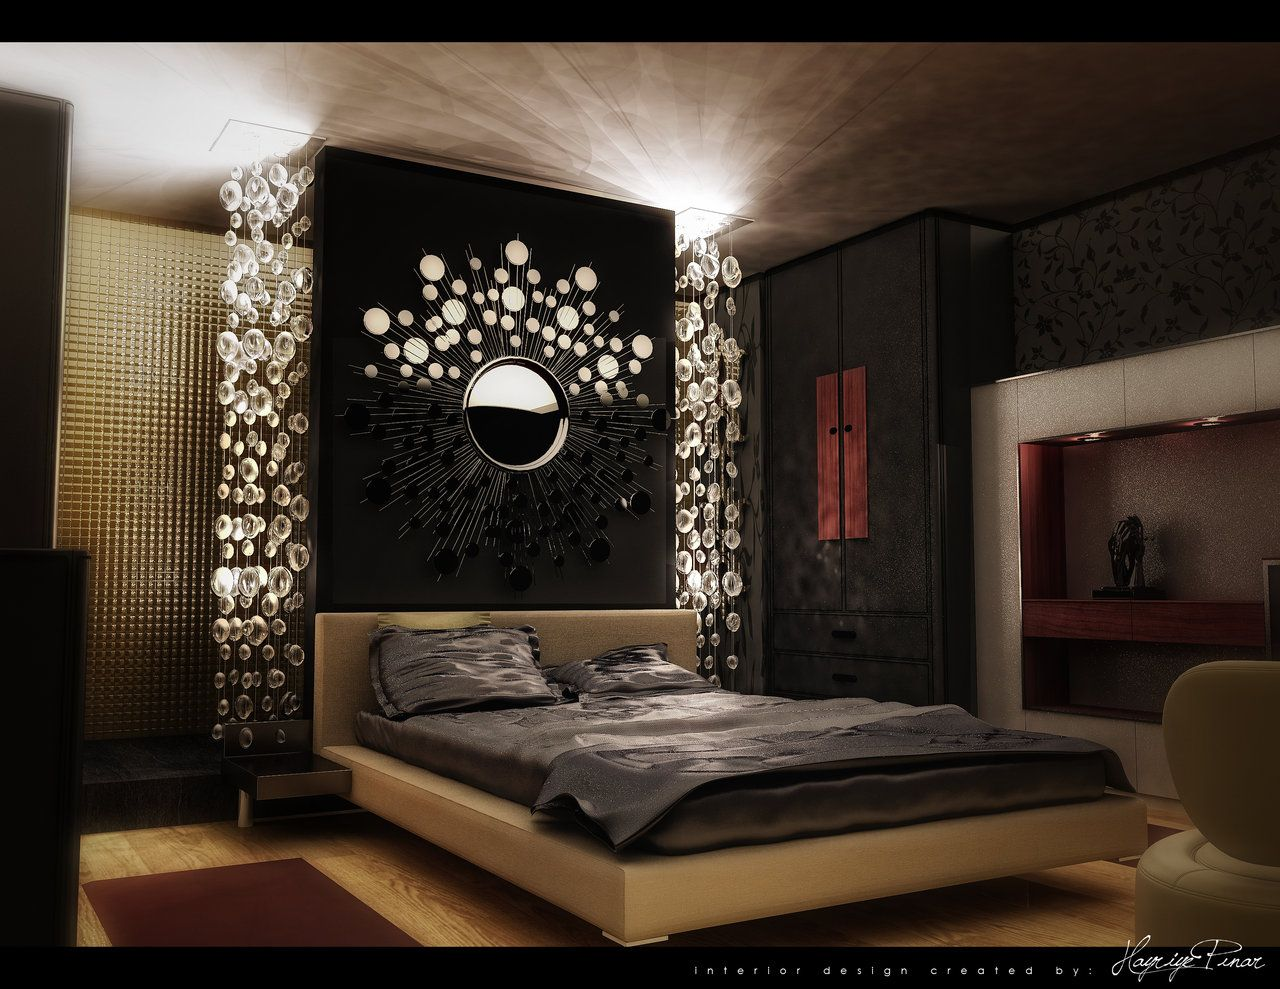 Living Room Bedrooms Decoration 1000 images about bedroom ideas on pinterest luxury bedrooms design and themes